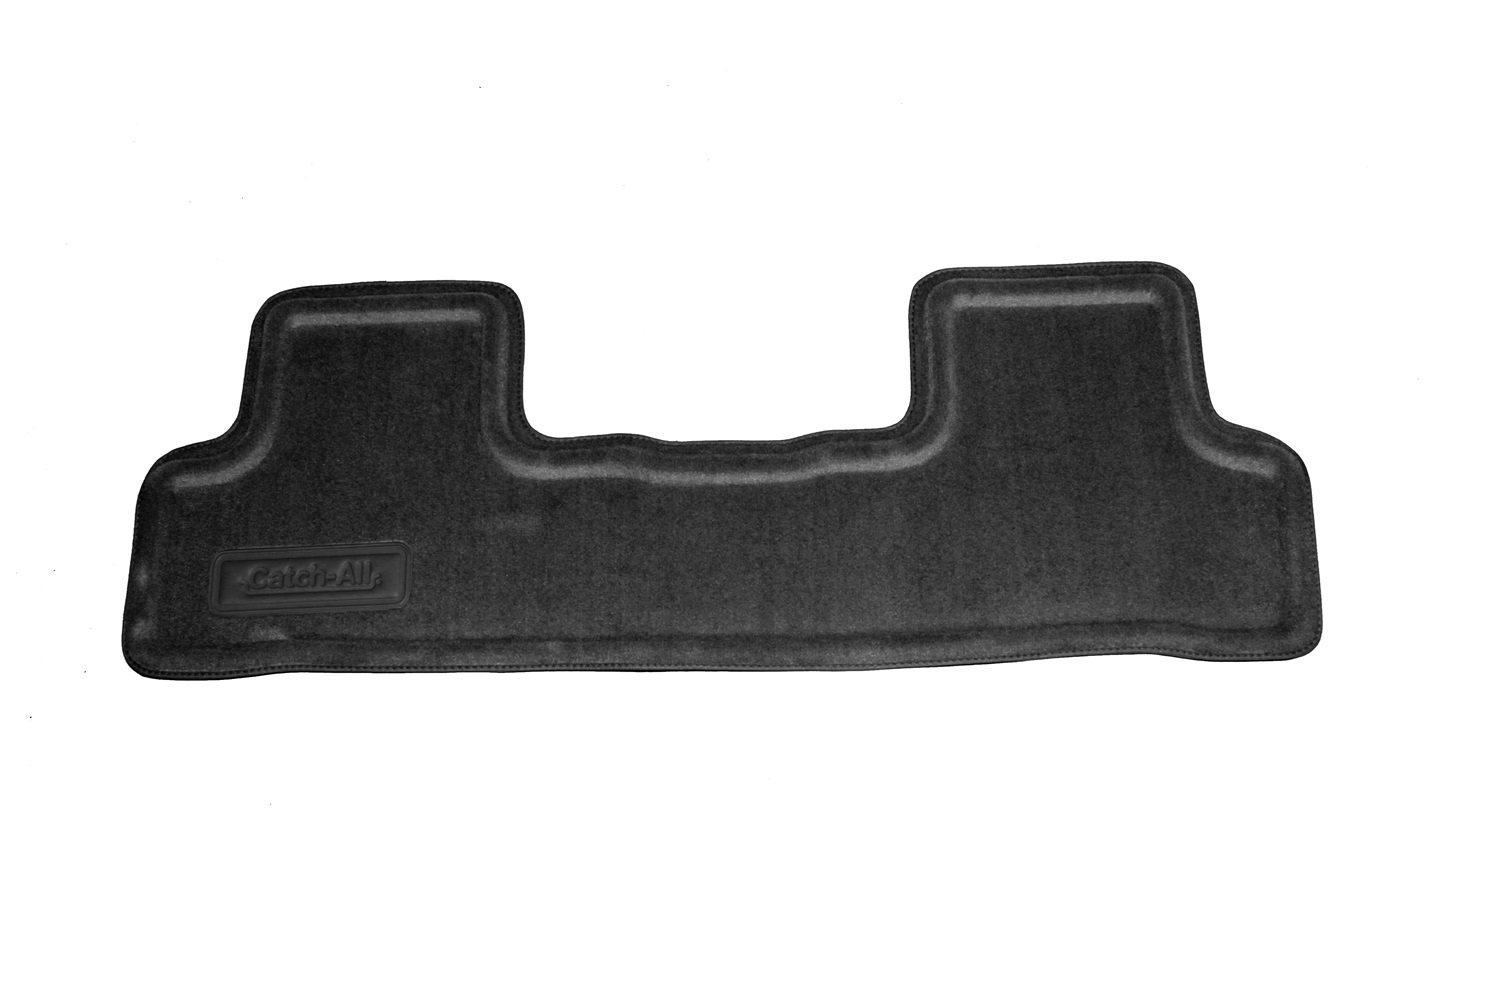 Lund 6280549 Catch-All Charcoal 2nd Seat Floor Mat